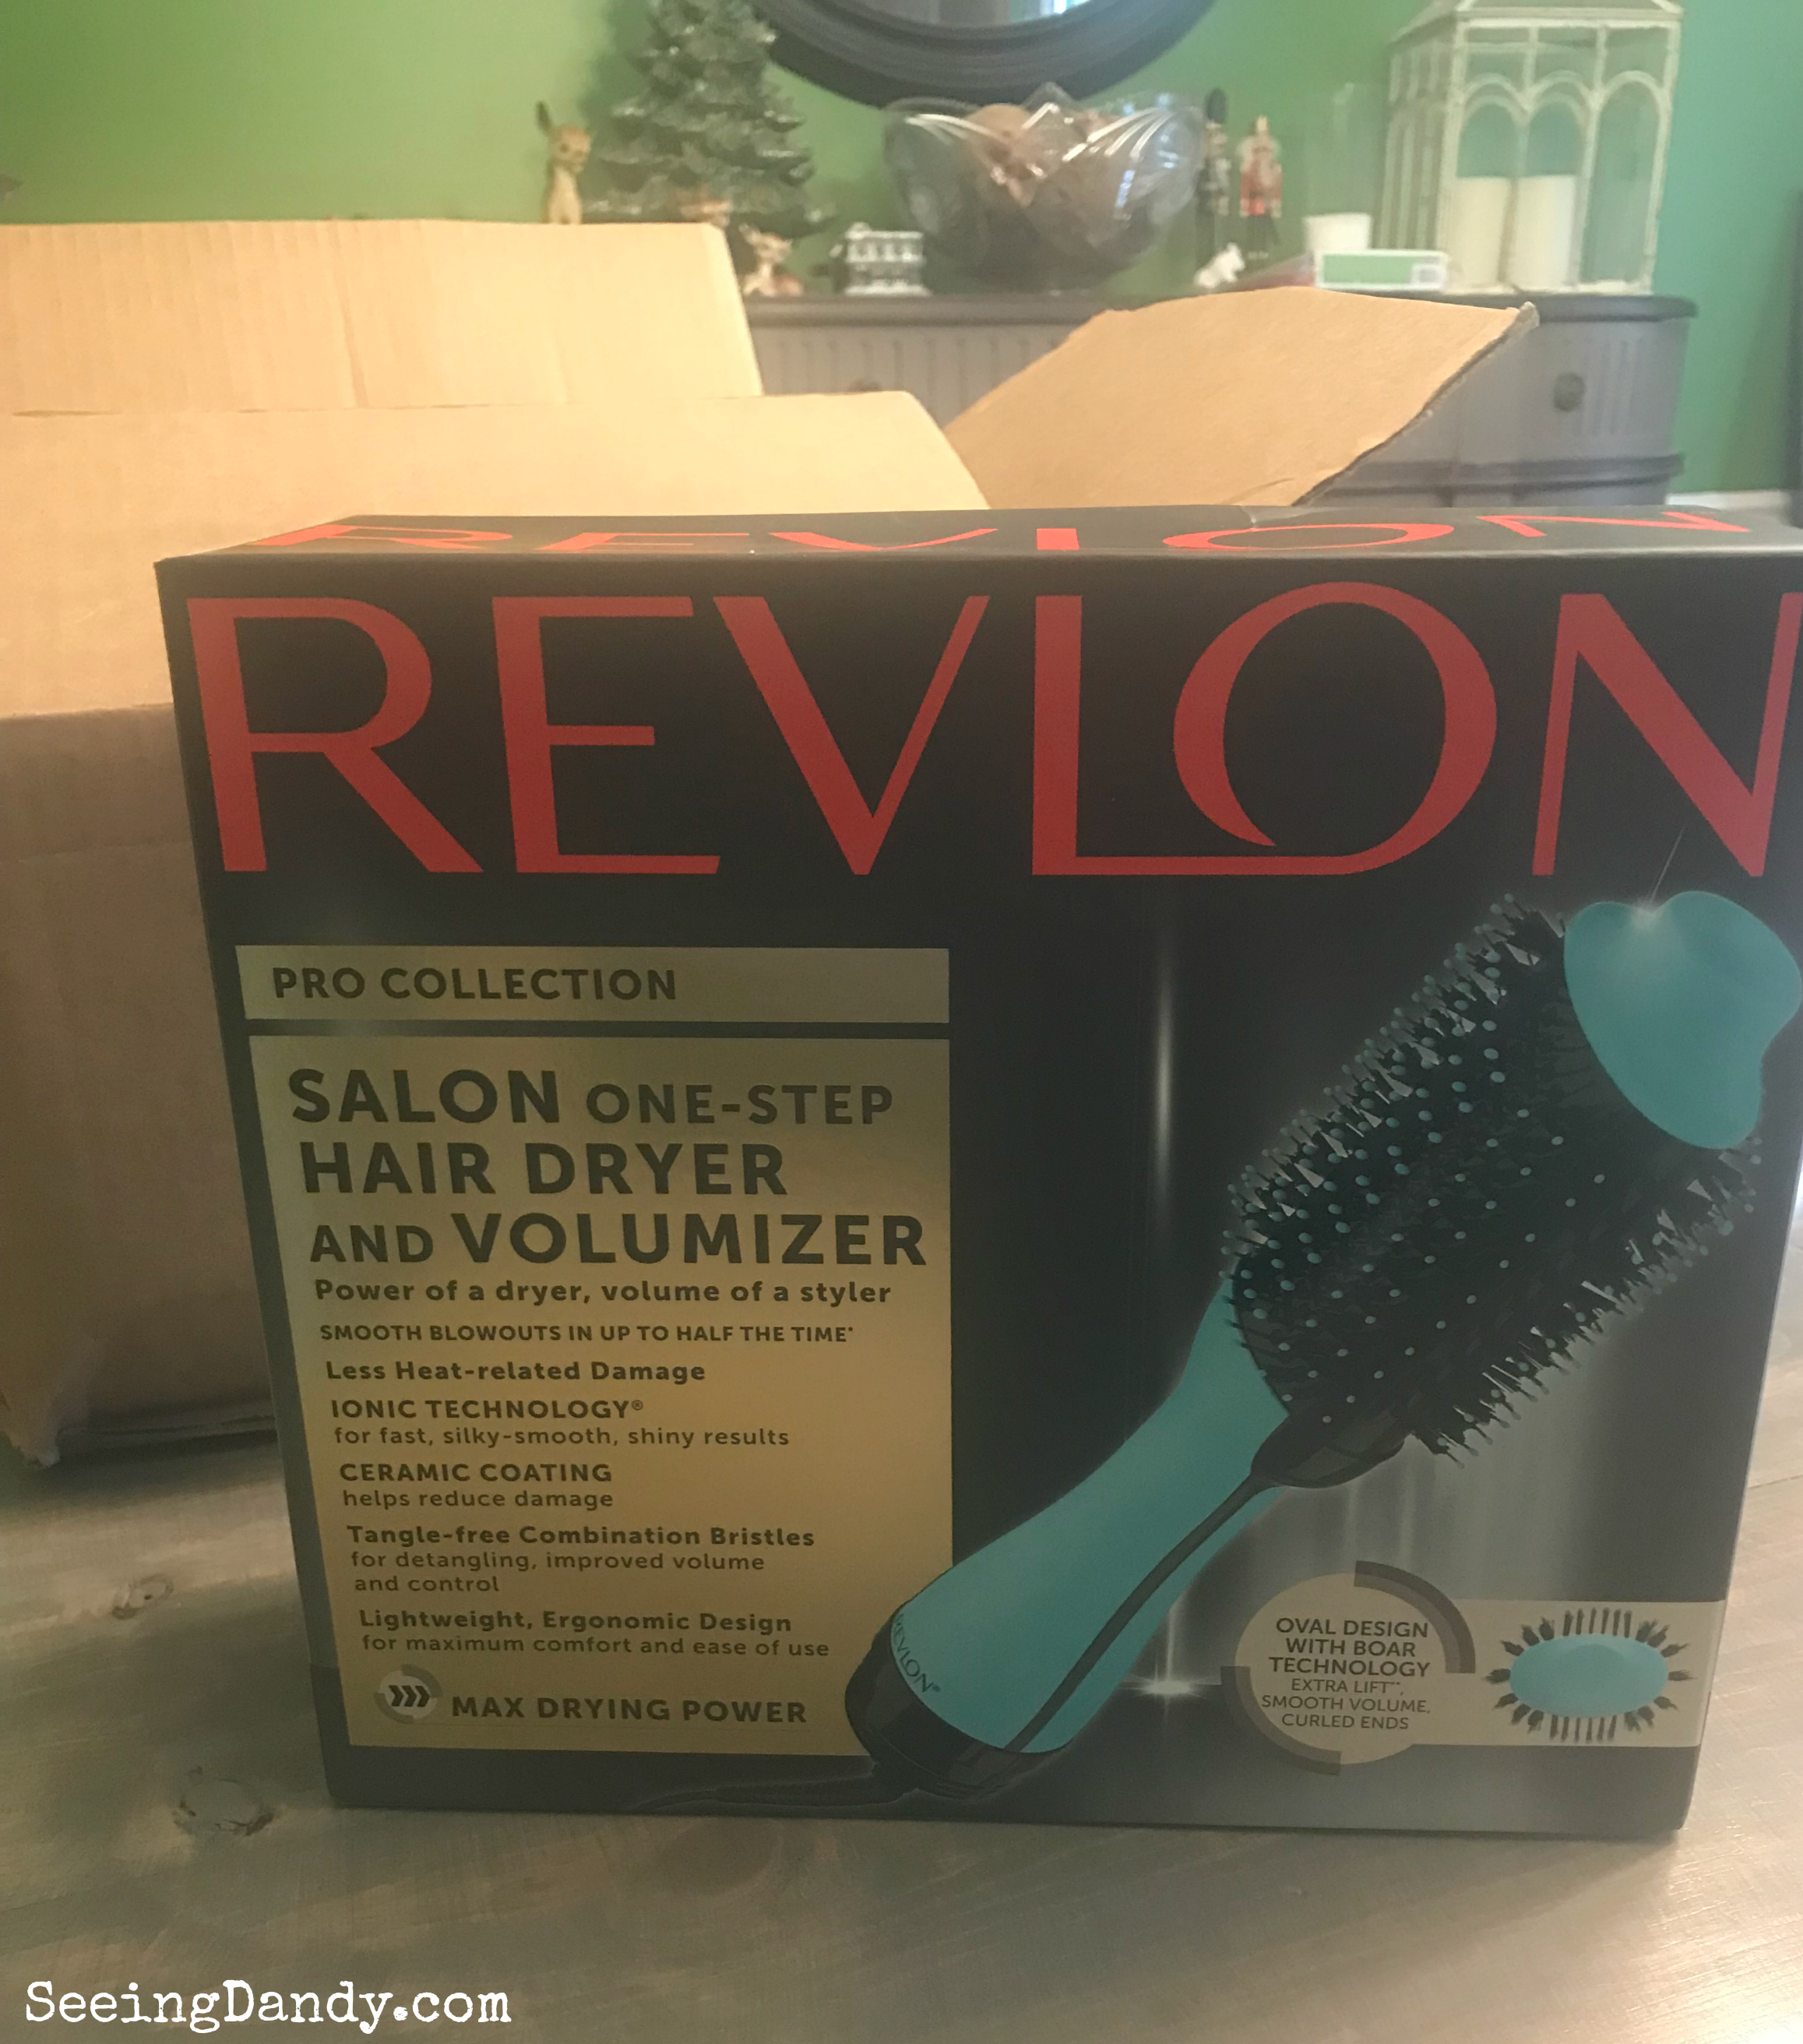 Revlon One Step Hair Dryer and Volumizer unboxing in modern farmhouse dining room. Box on farmhouse table with ceramic Christmas tree and other holiday decorations in the background.